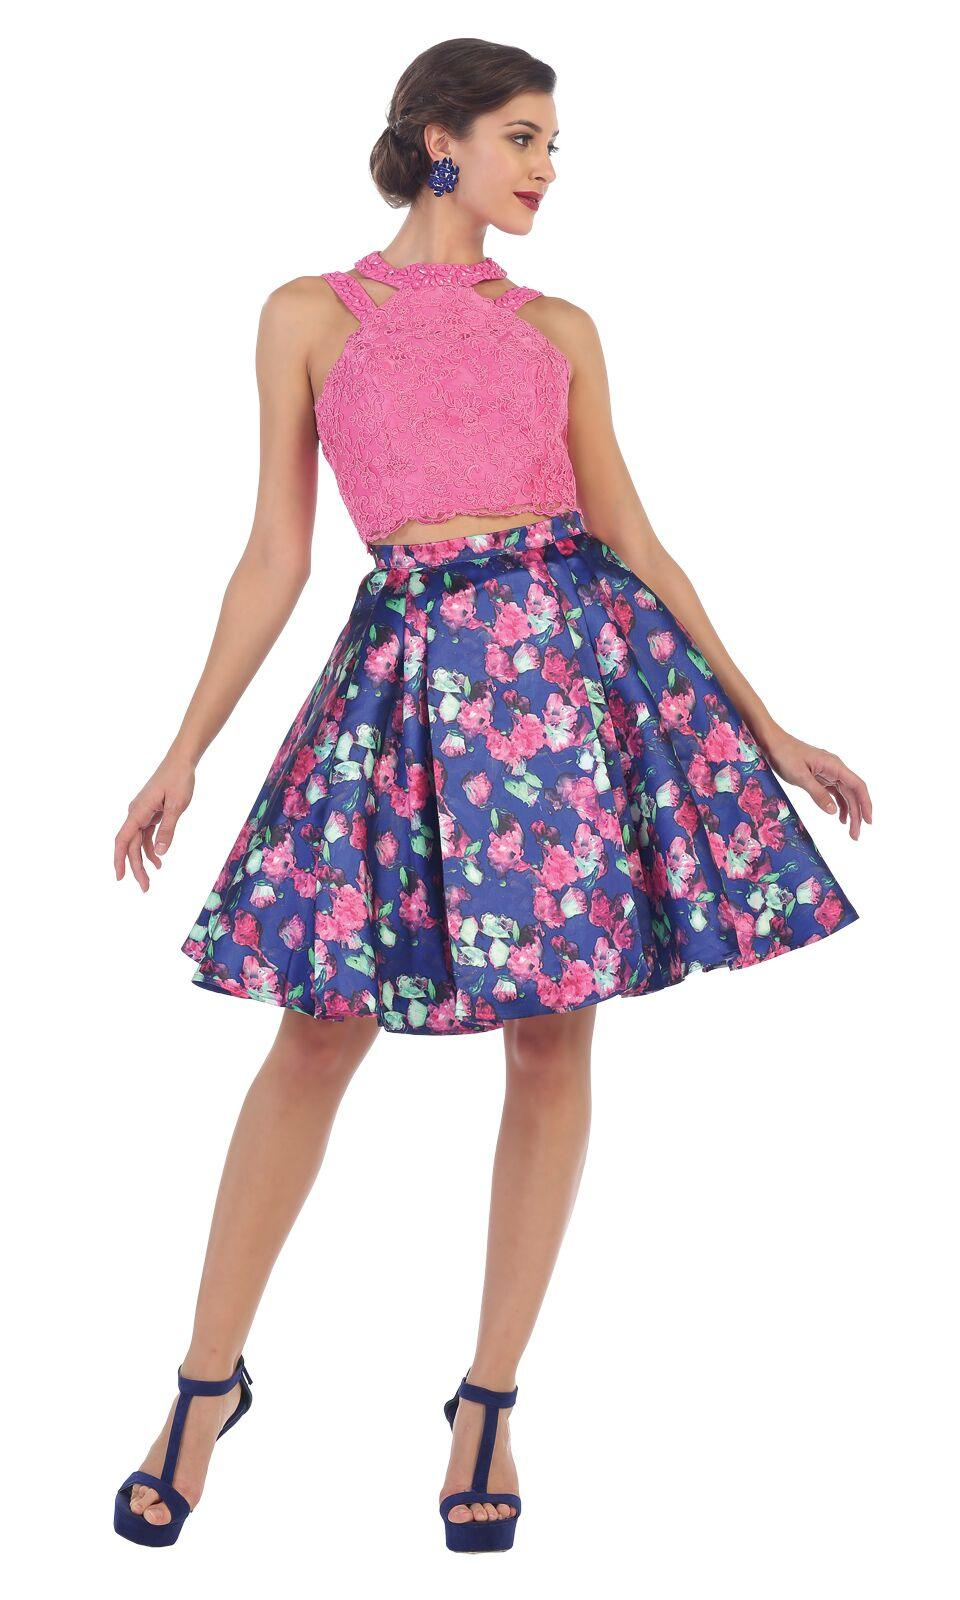 Short Two Piece Set Floral Print Prom Dress - The Dress Outlet Hot Pink/Multi